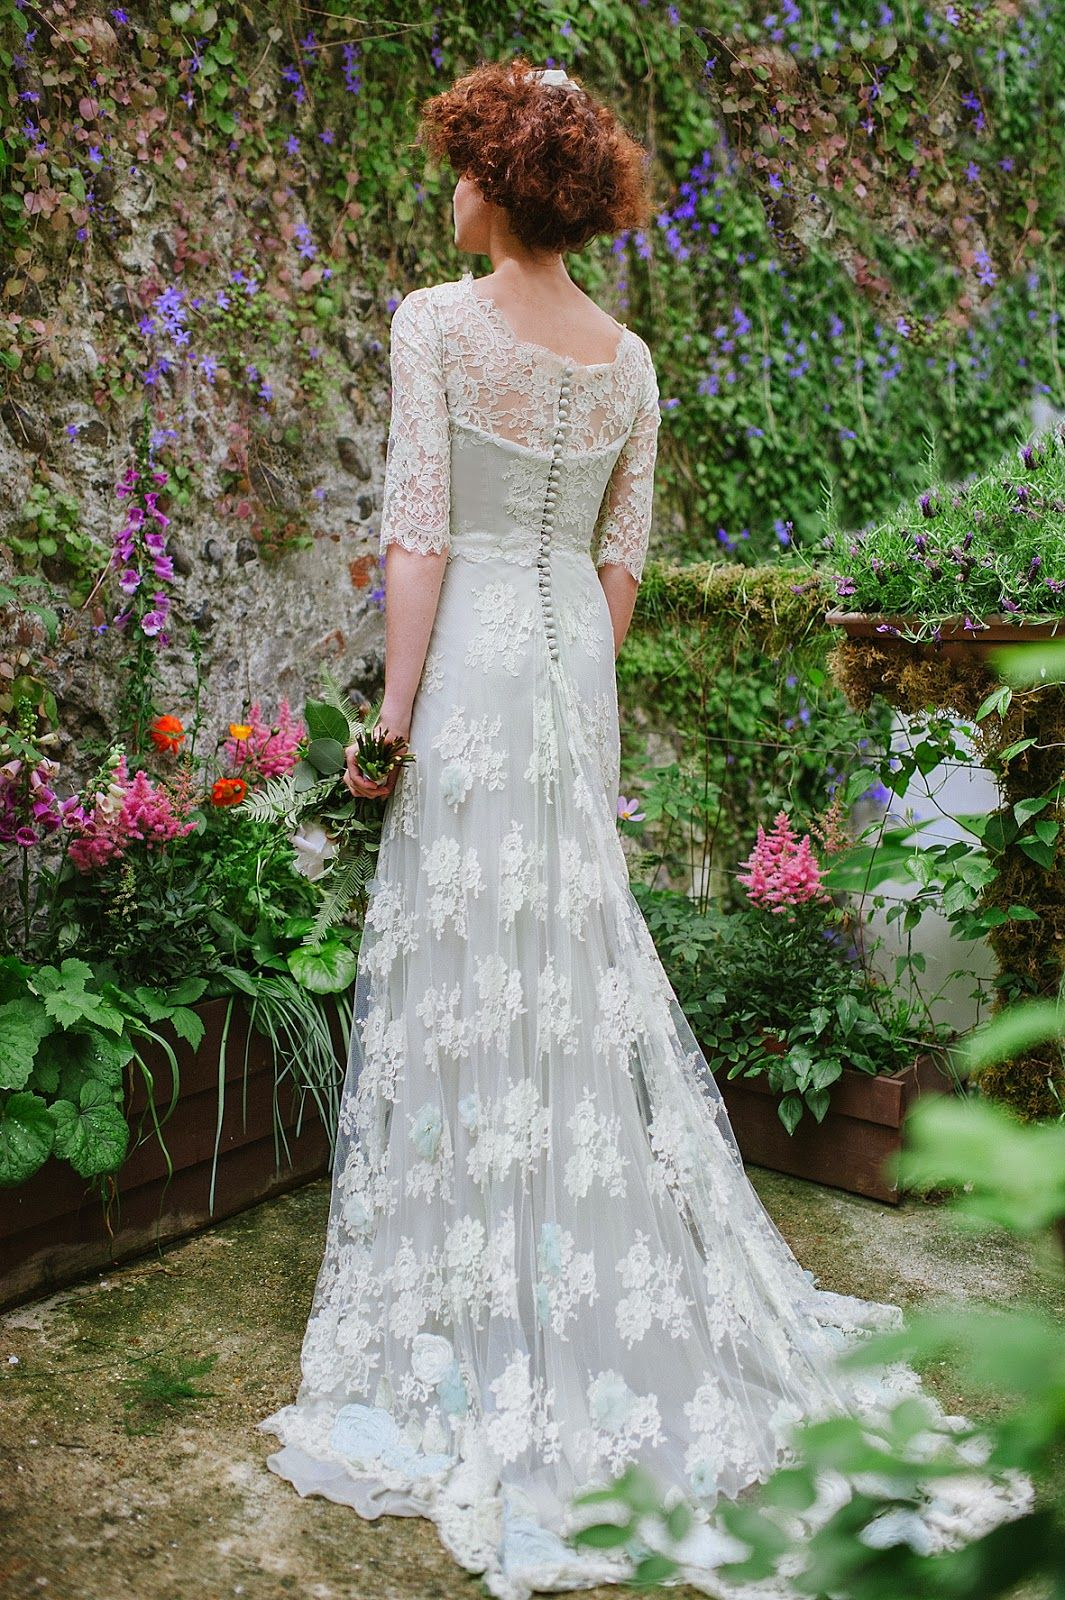 Langtryu pale green lace edwardian style wedding gown by joanne